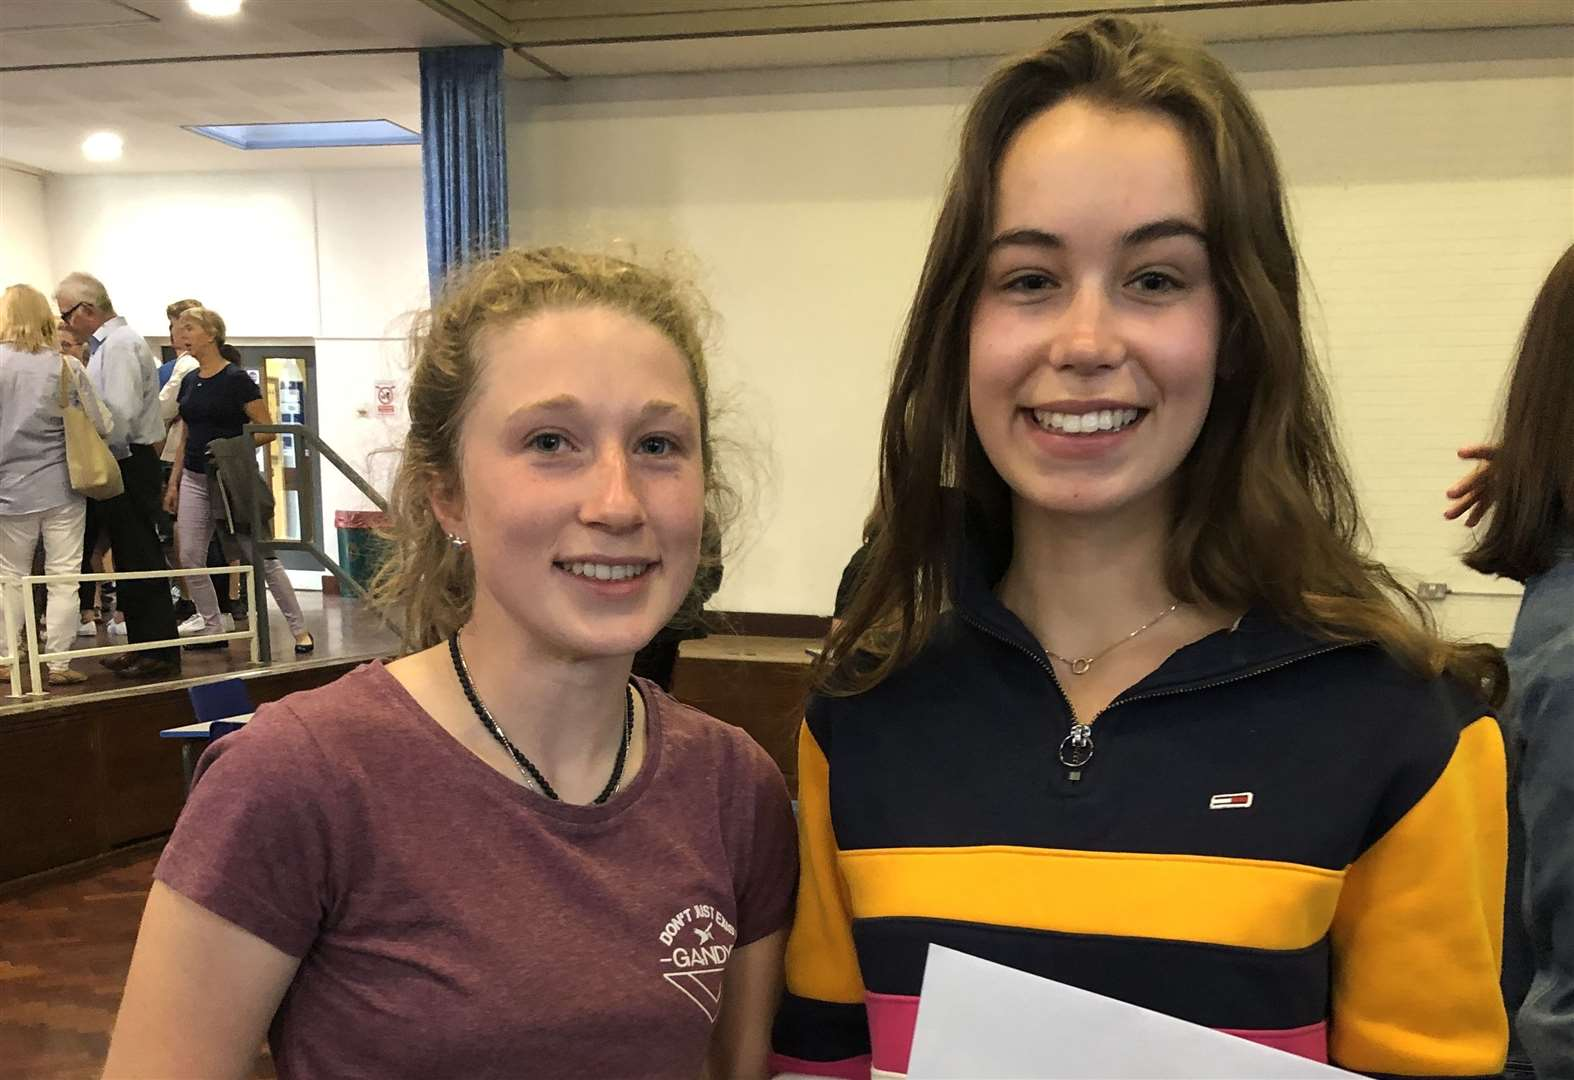 A-Level results day 2019: How schools in the Bishop's Stortford area fared